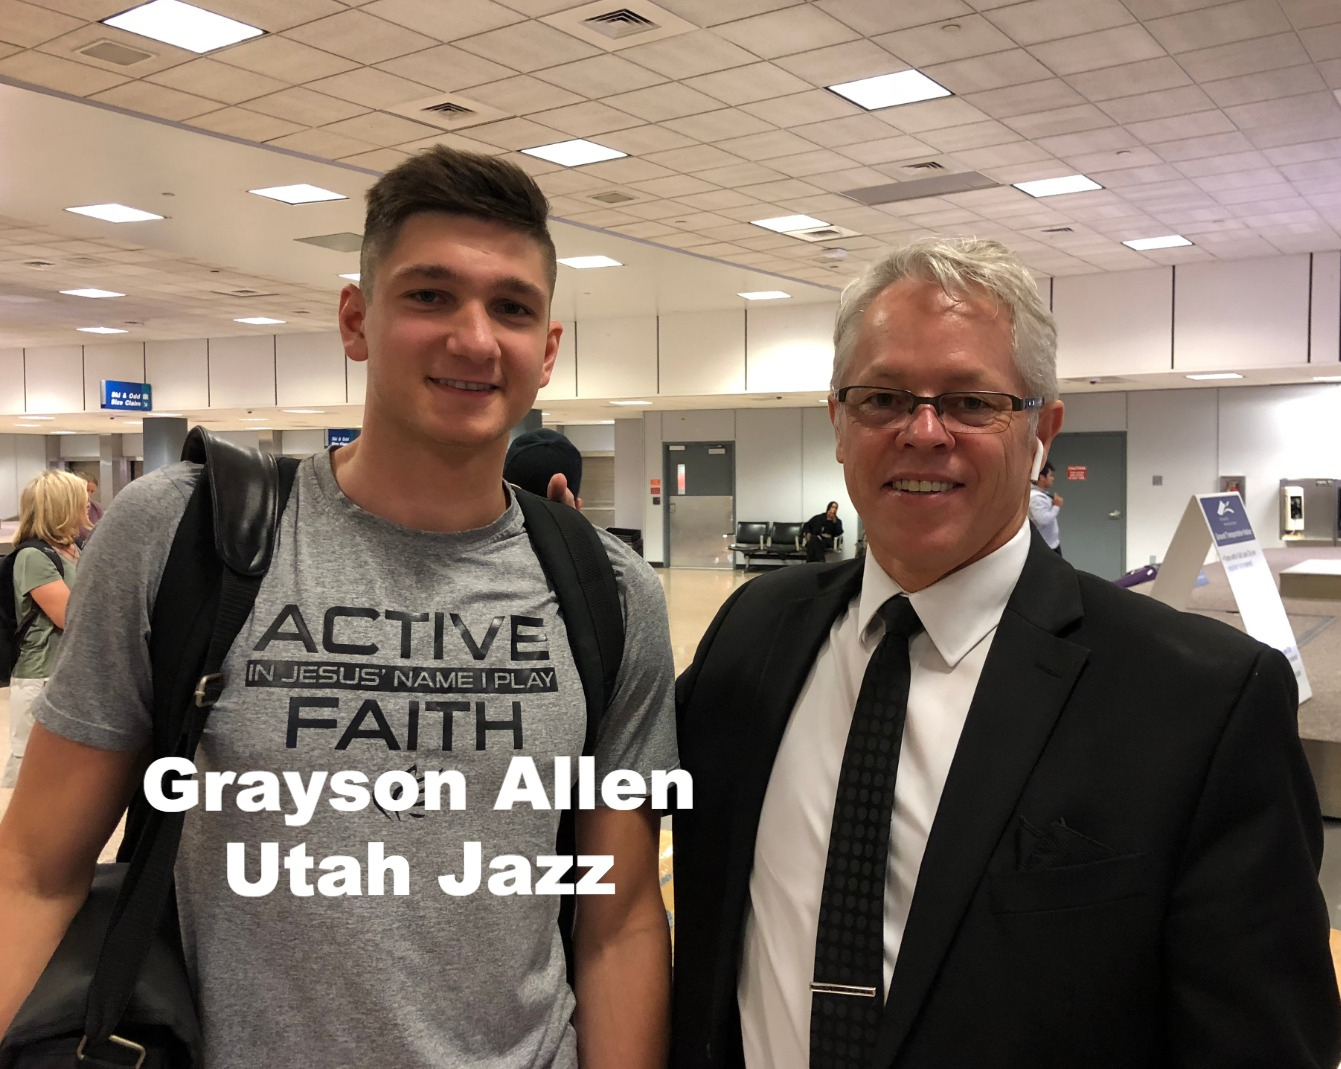 Grayson Allen Utah Jazz 08212018_edited.